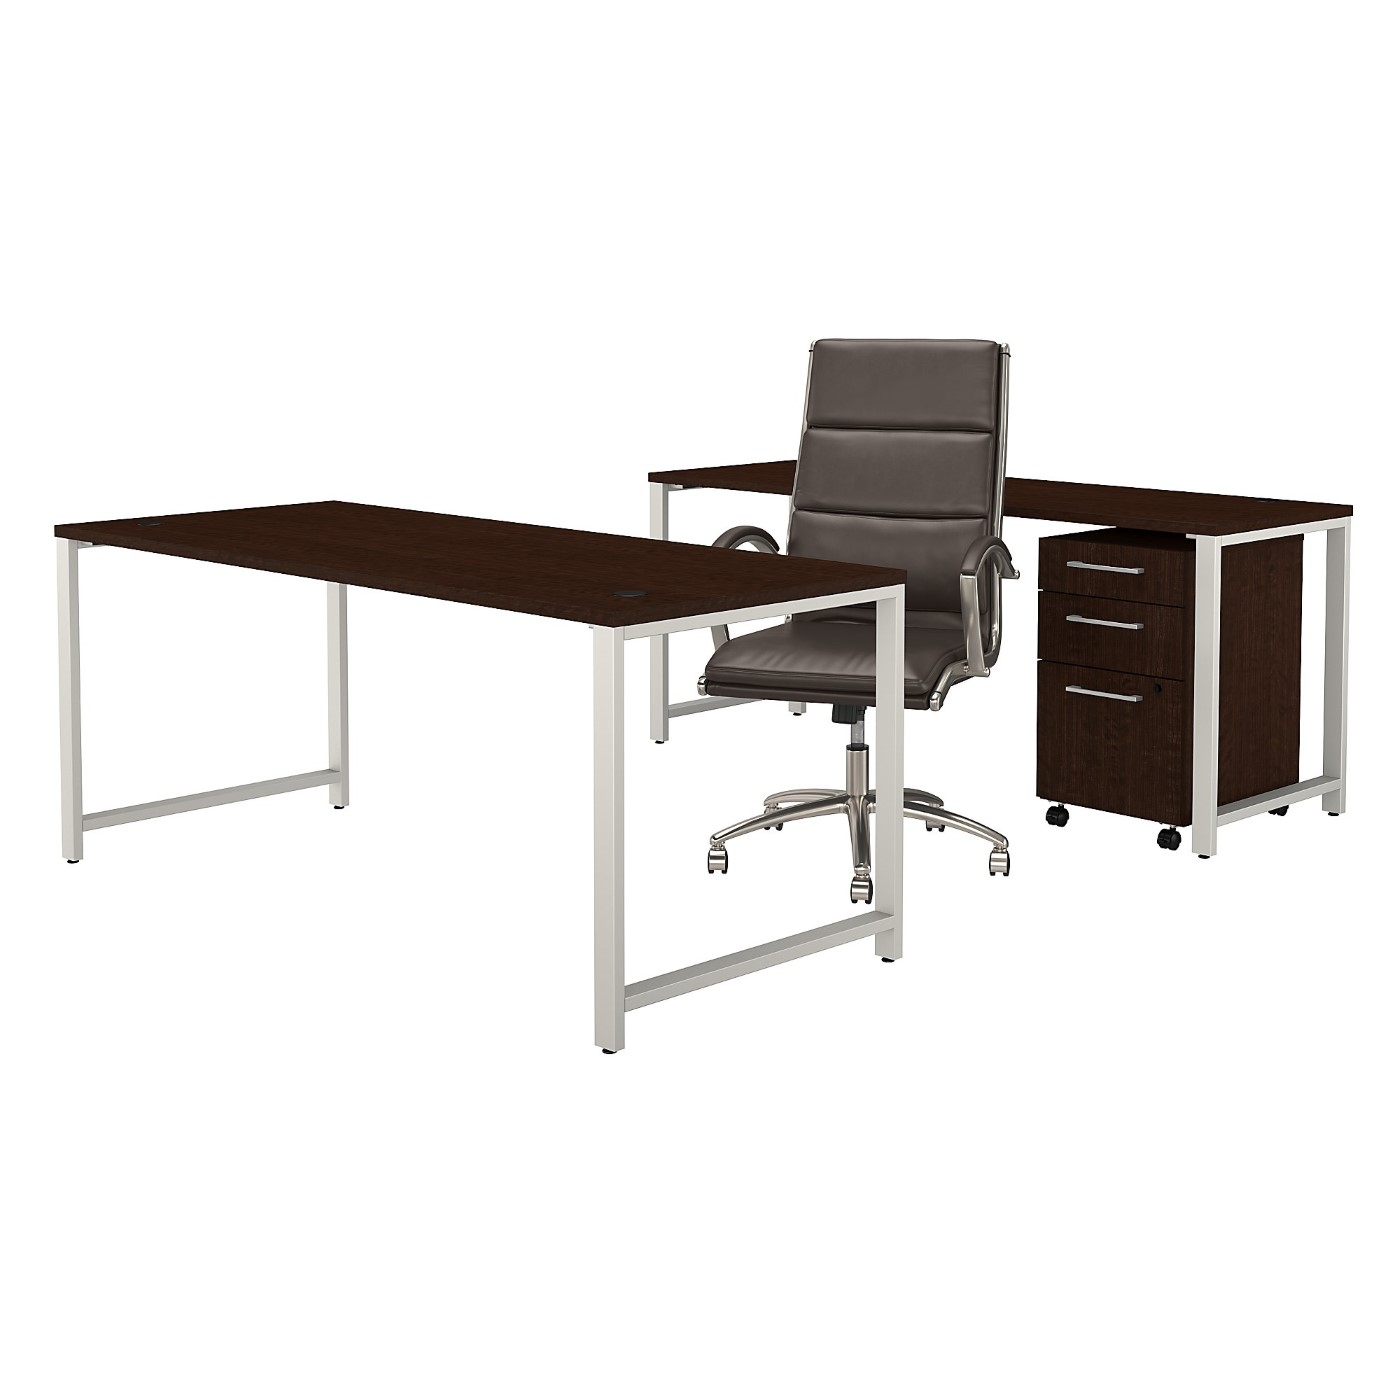 BUSH BUSINESS FURNITURE 400 SERIES 72W TABLE DESK SET WITH OFFICE CHAIR AND MOBILE FILE CABINET. FREE SHIPPING